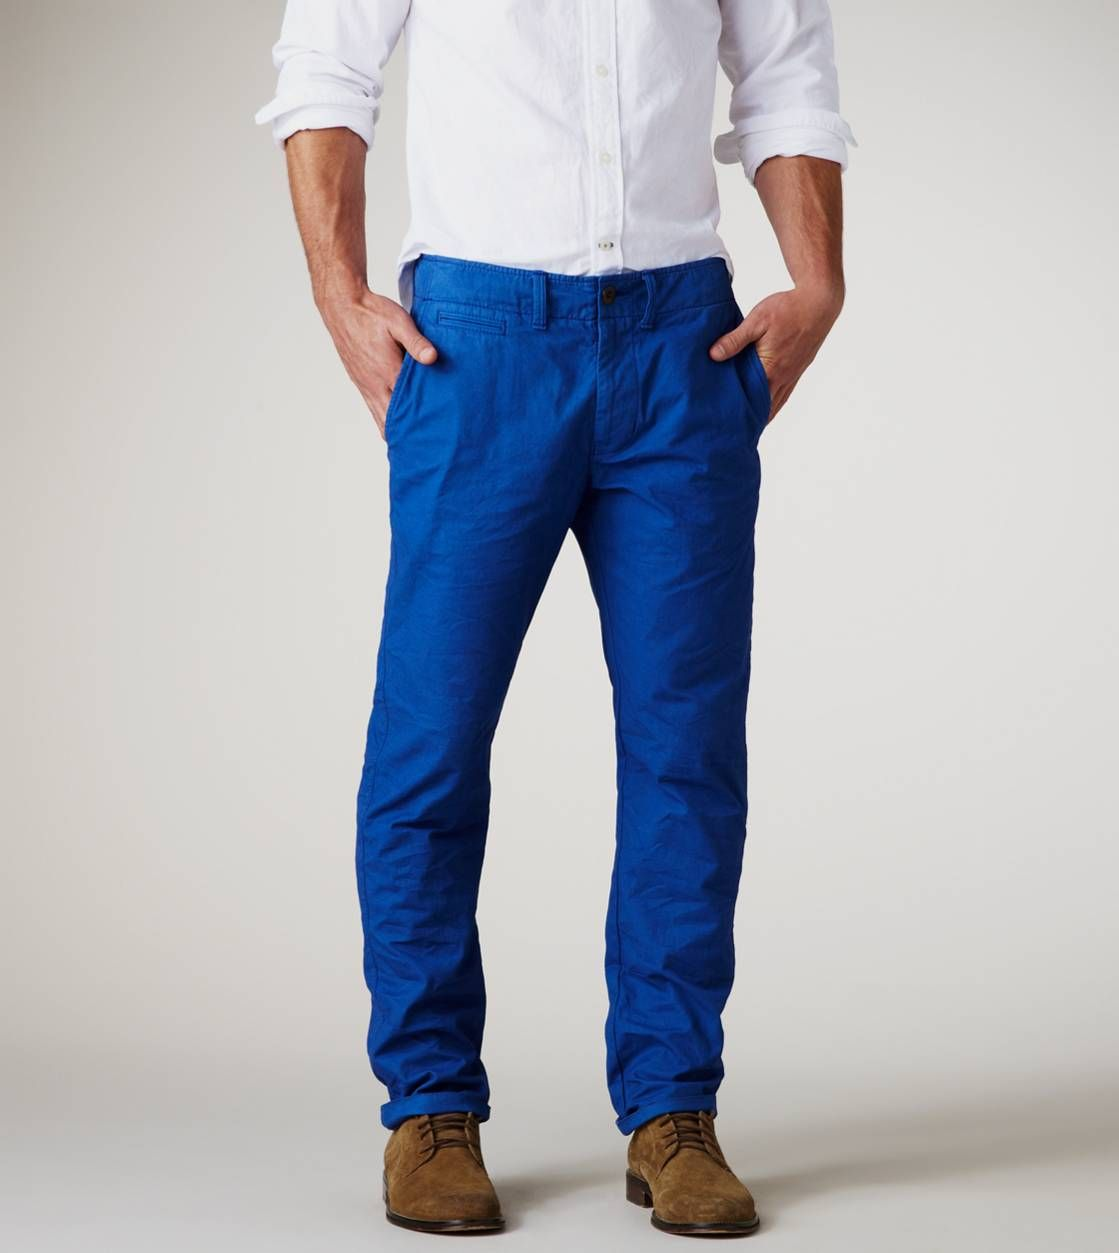 Free shipping and returns on Men's Blue Pants at dexterminduwi.ga